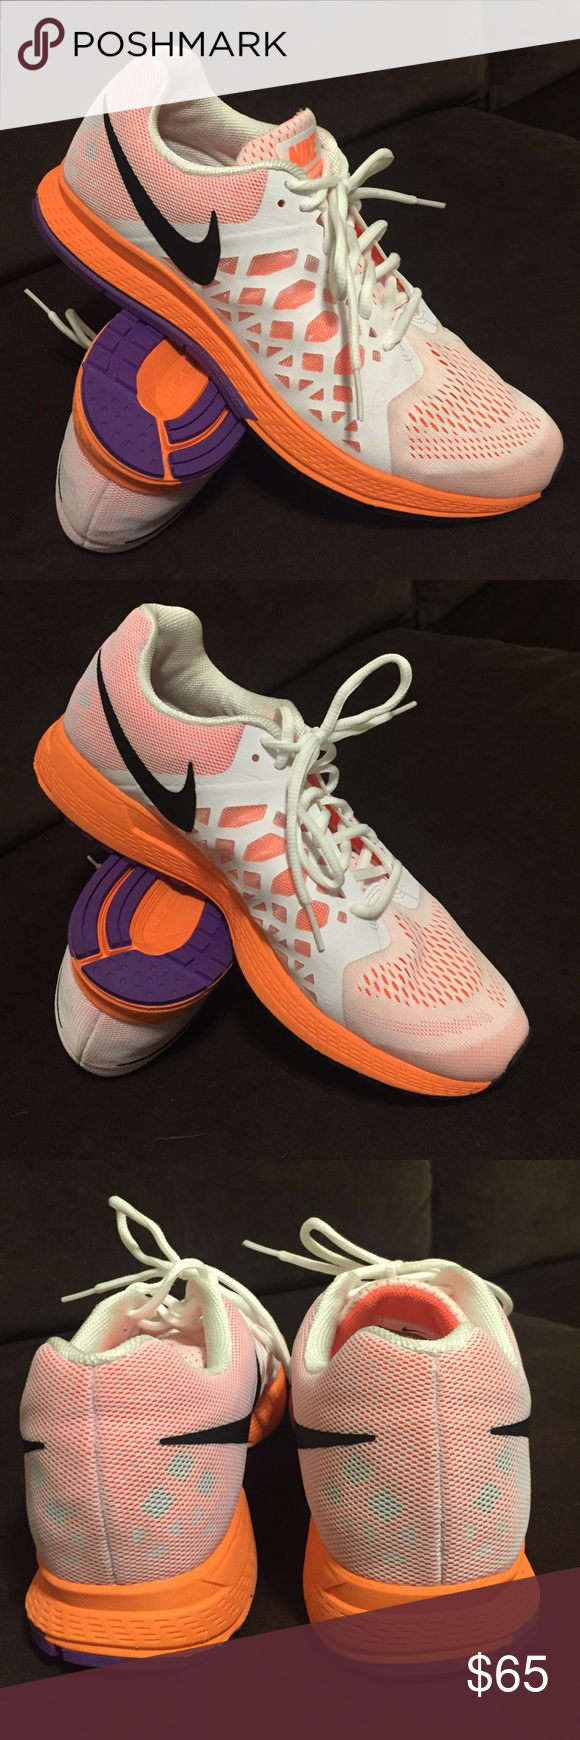 info for 59fd1 f3626 Mike air zoom Pegasus 31 white hyper orange 11 43 Women s Nike air zoom  Pegasus 31 I. White with orange and purple trim. Excellent low use  condition Nike ...